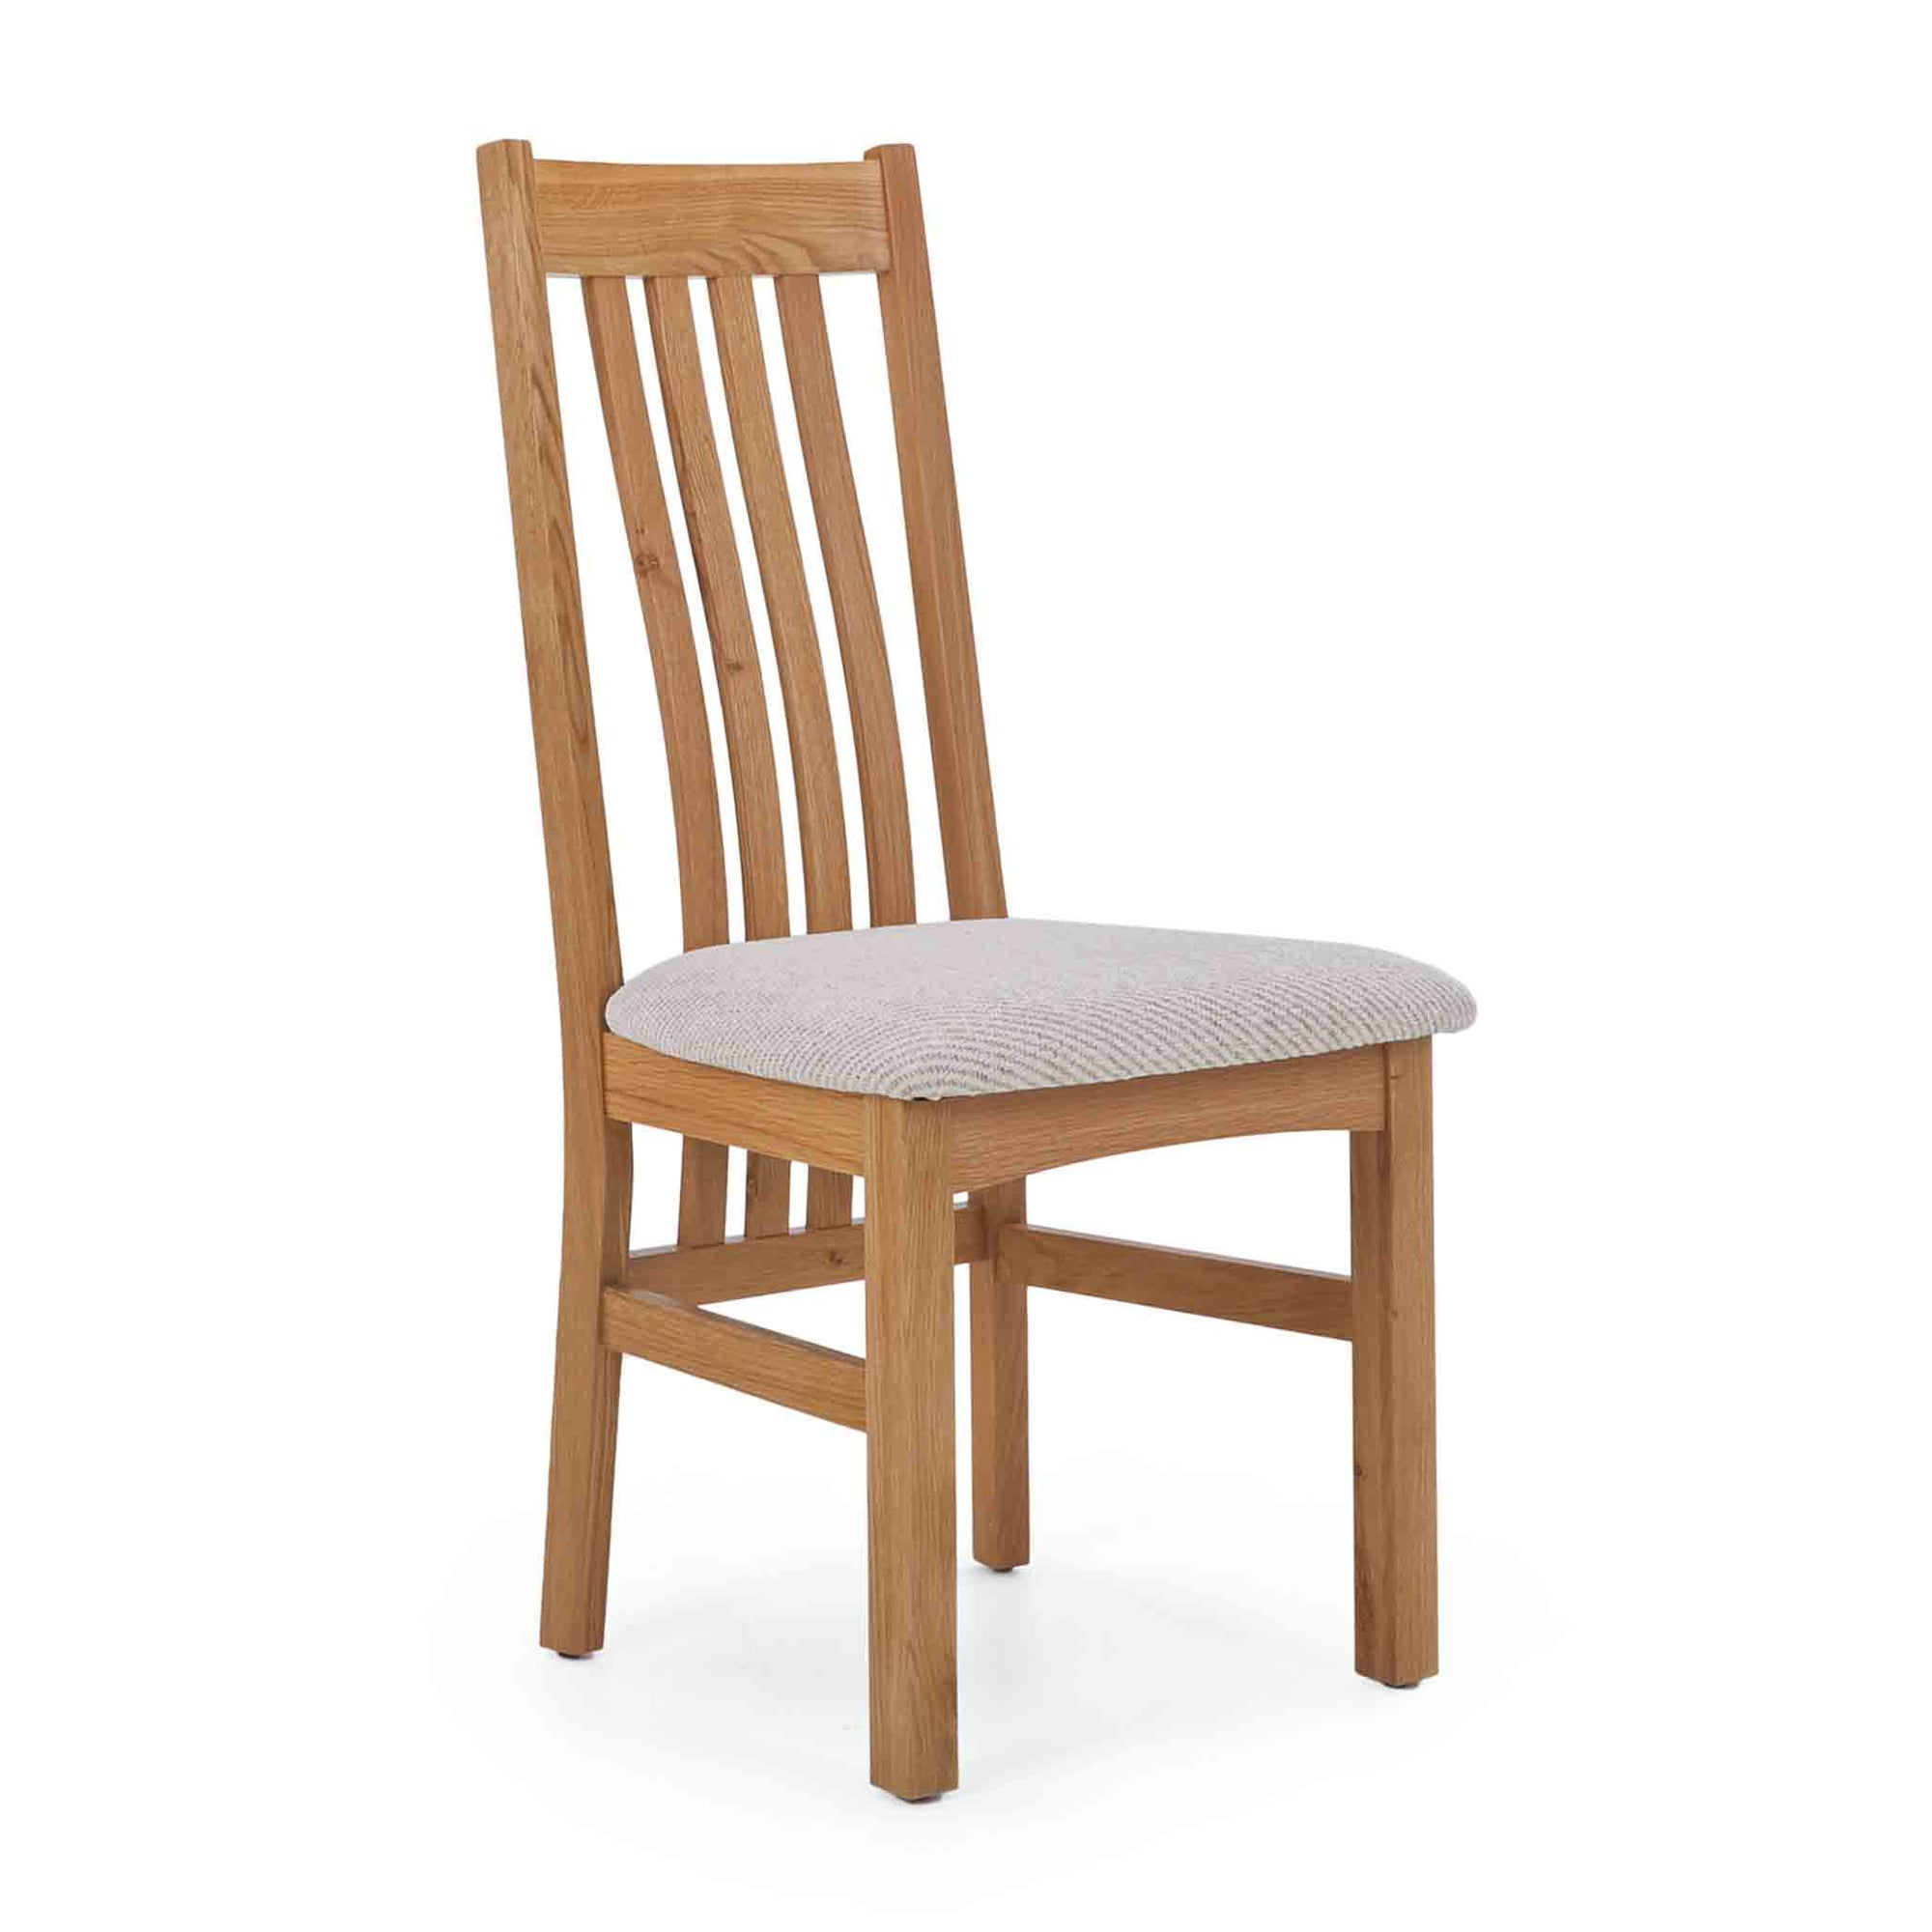 Falmouth Oak Slatted Dining Chair by Roseland Furniture